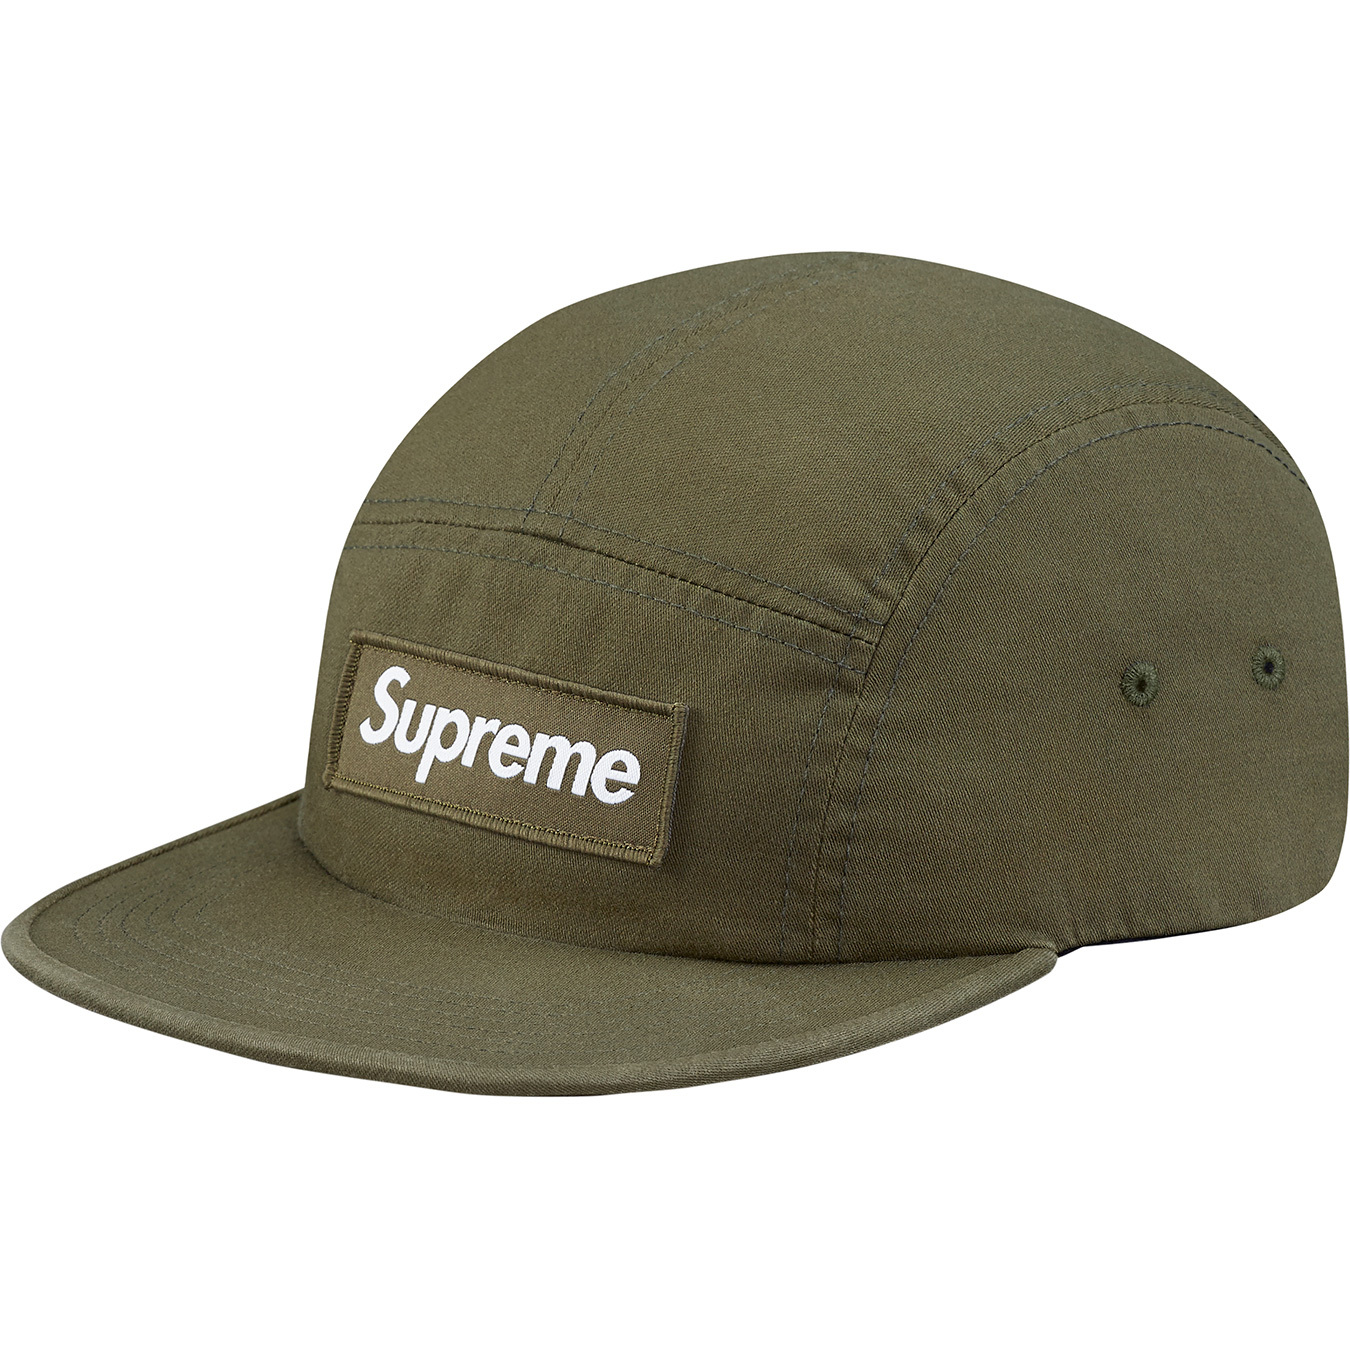 supreme-2017ss-military-camp-cap